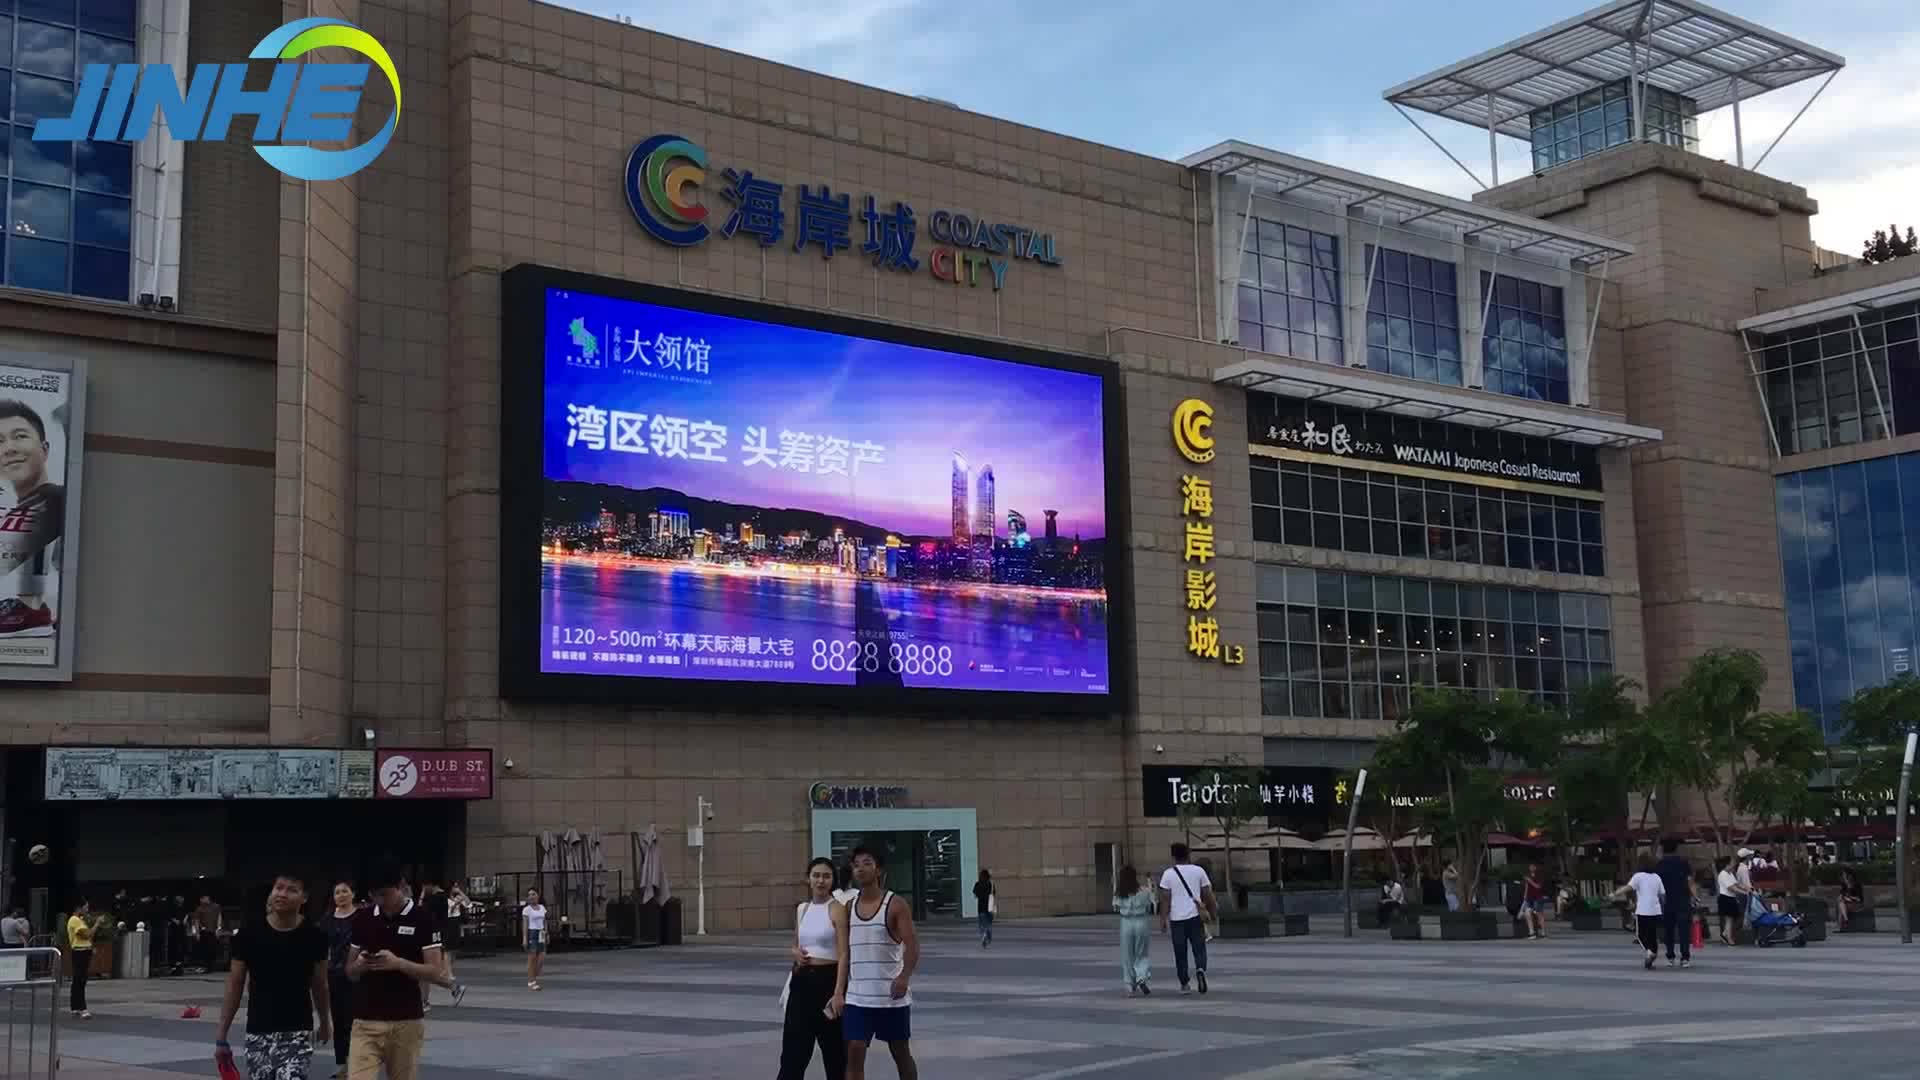 Outdoor/Indoor LED P3 P4 P6 P8 P10 Video Wall Display Screen With Wholesale Price